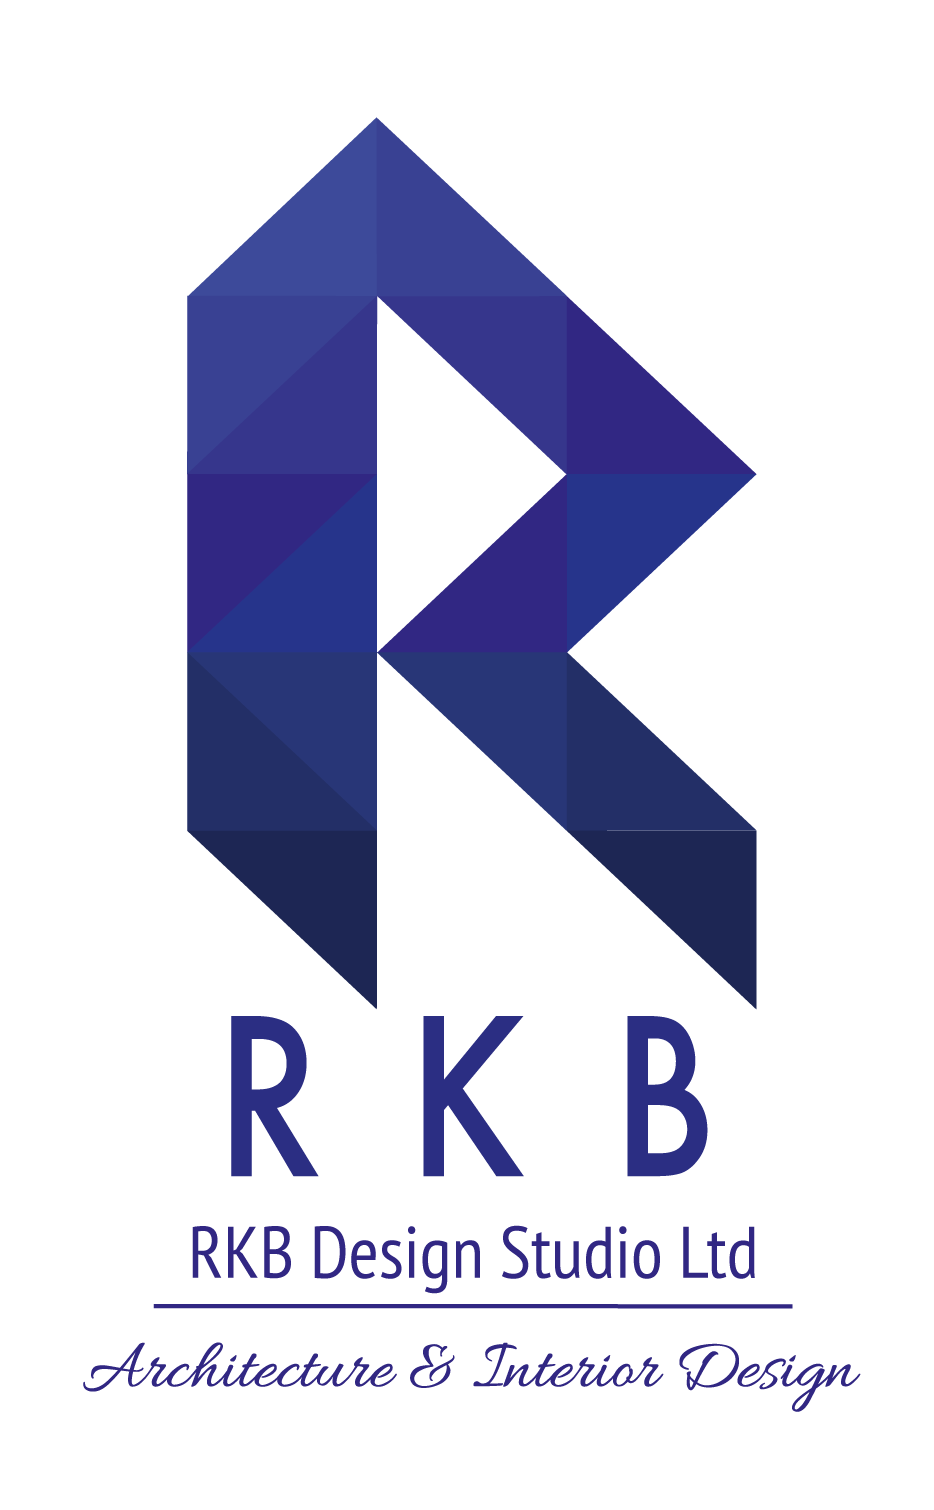 rkb-design-studio-logo-4